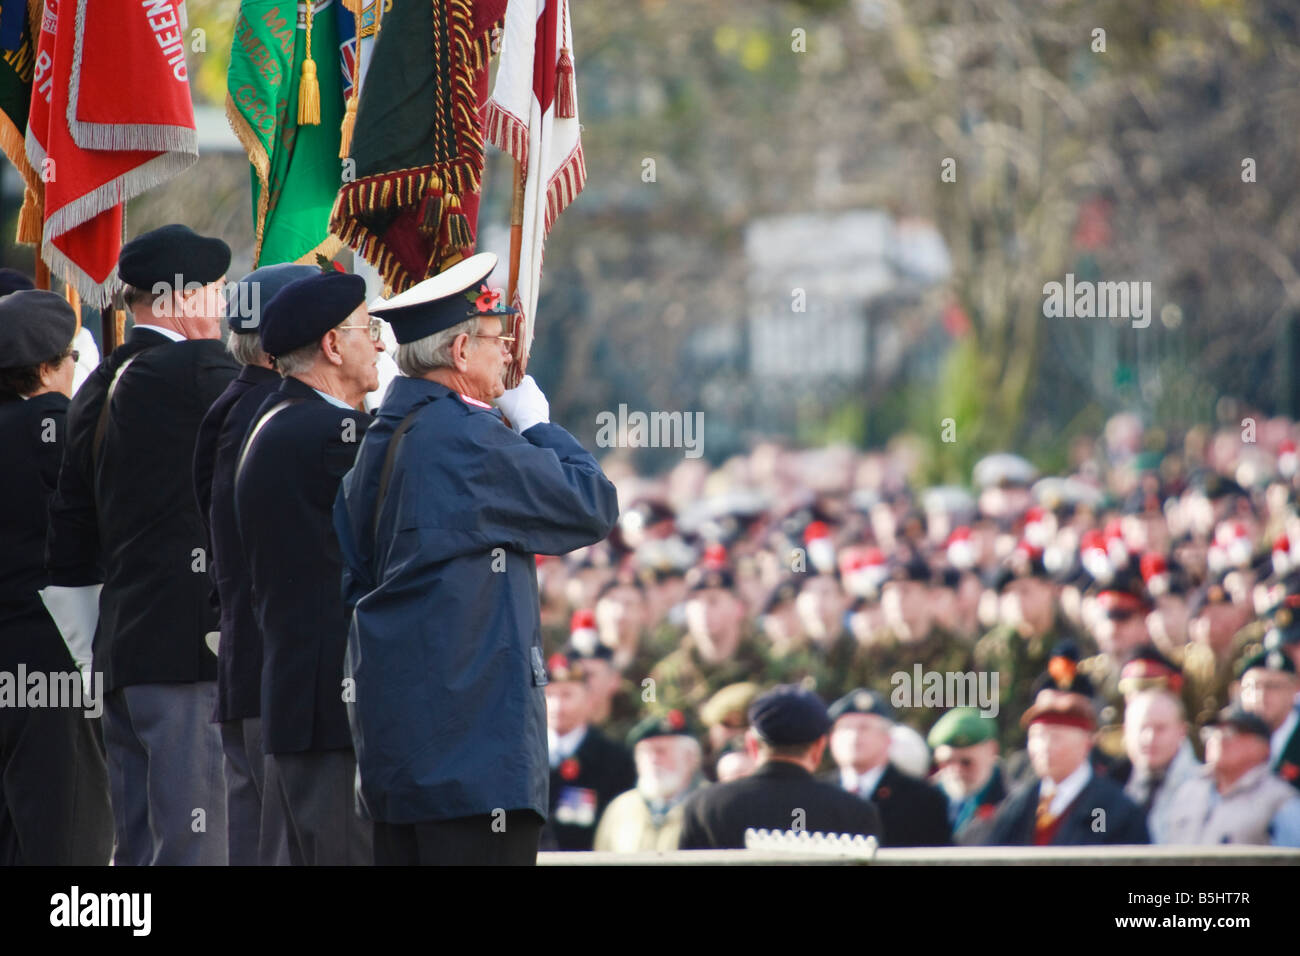 Veterans raise flags at Remembrance day service in Birmingham. - Stock Image